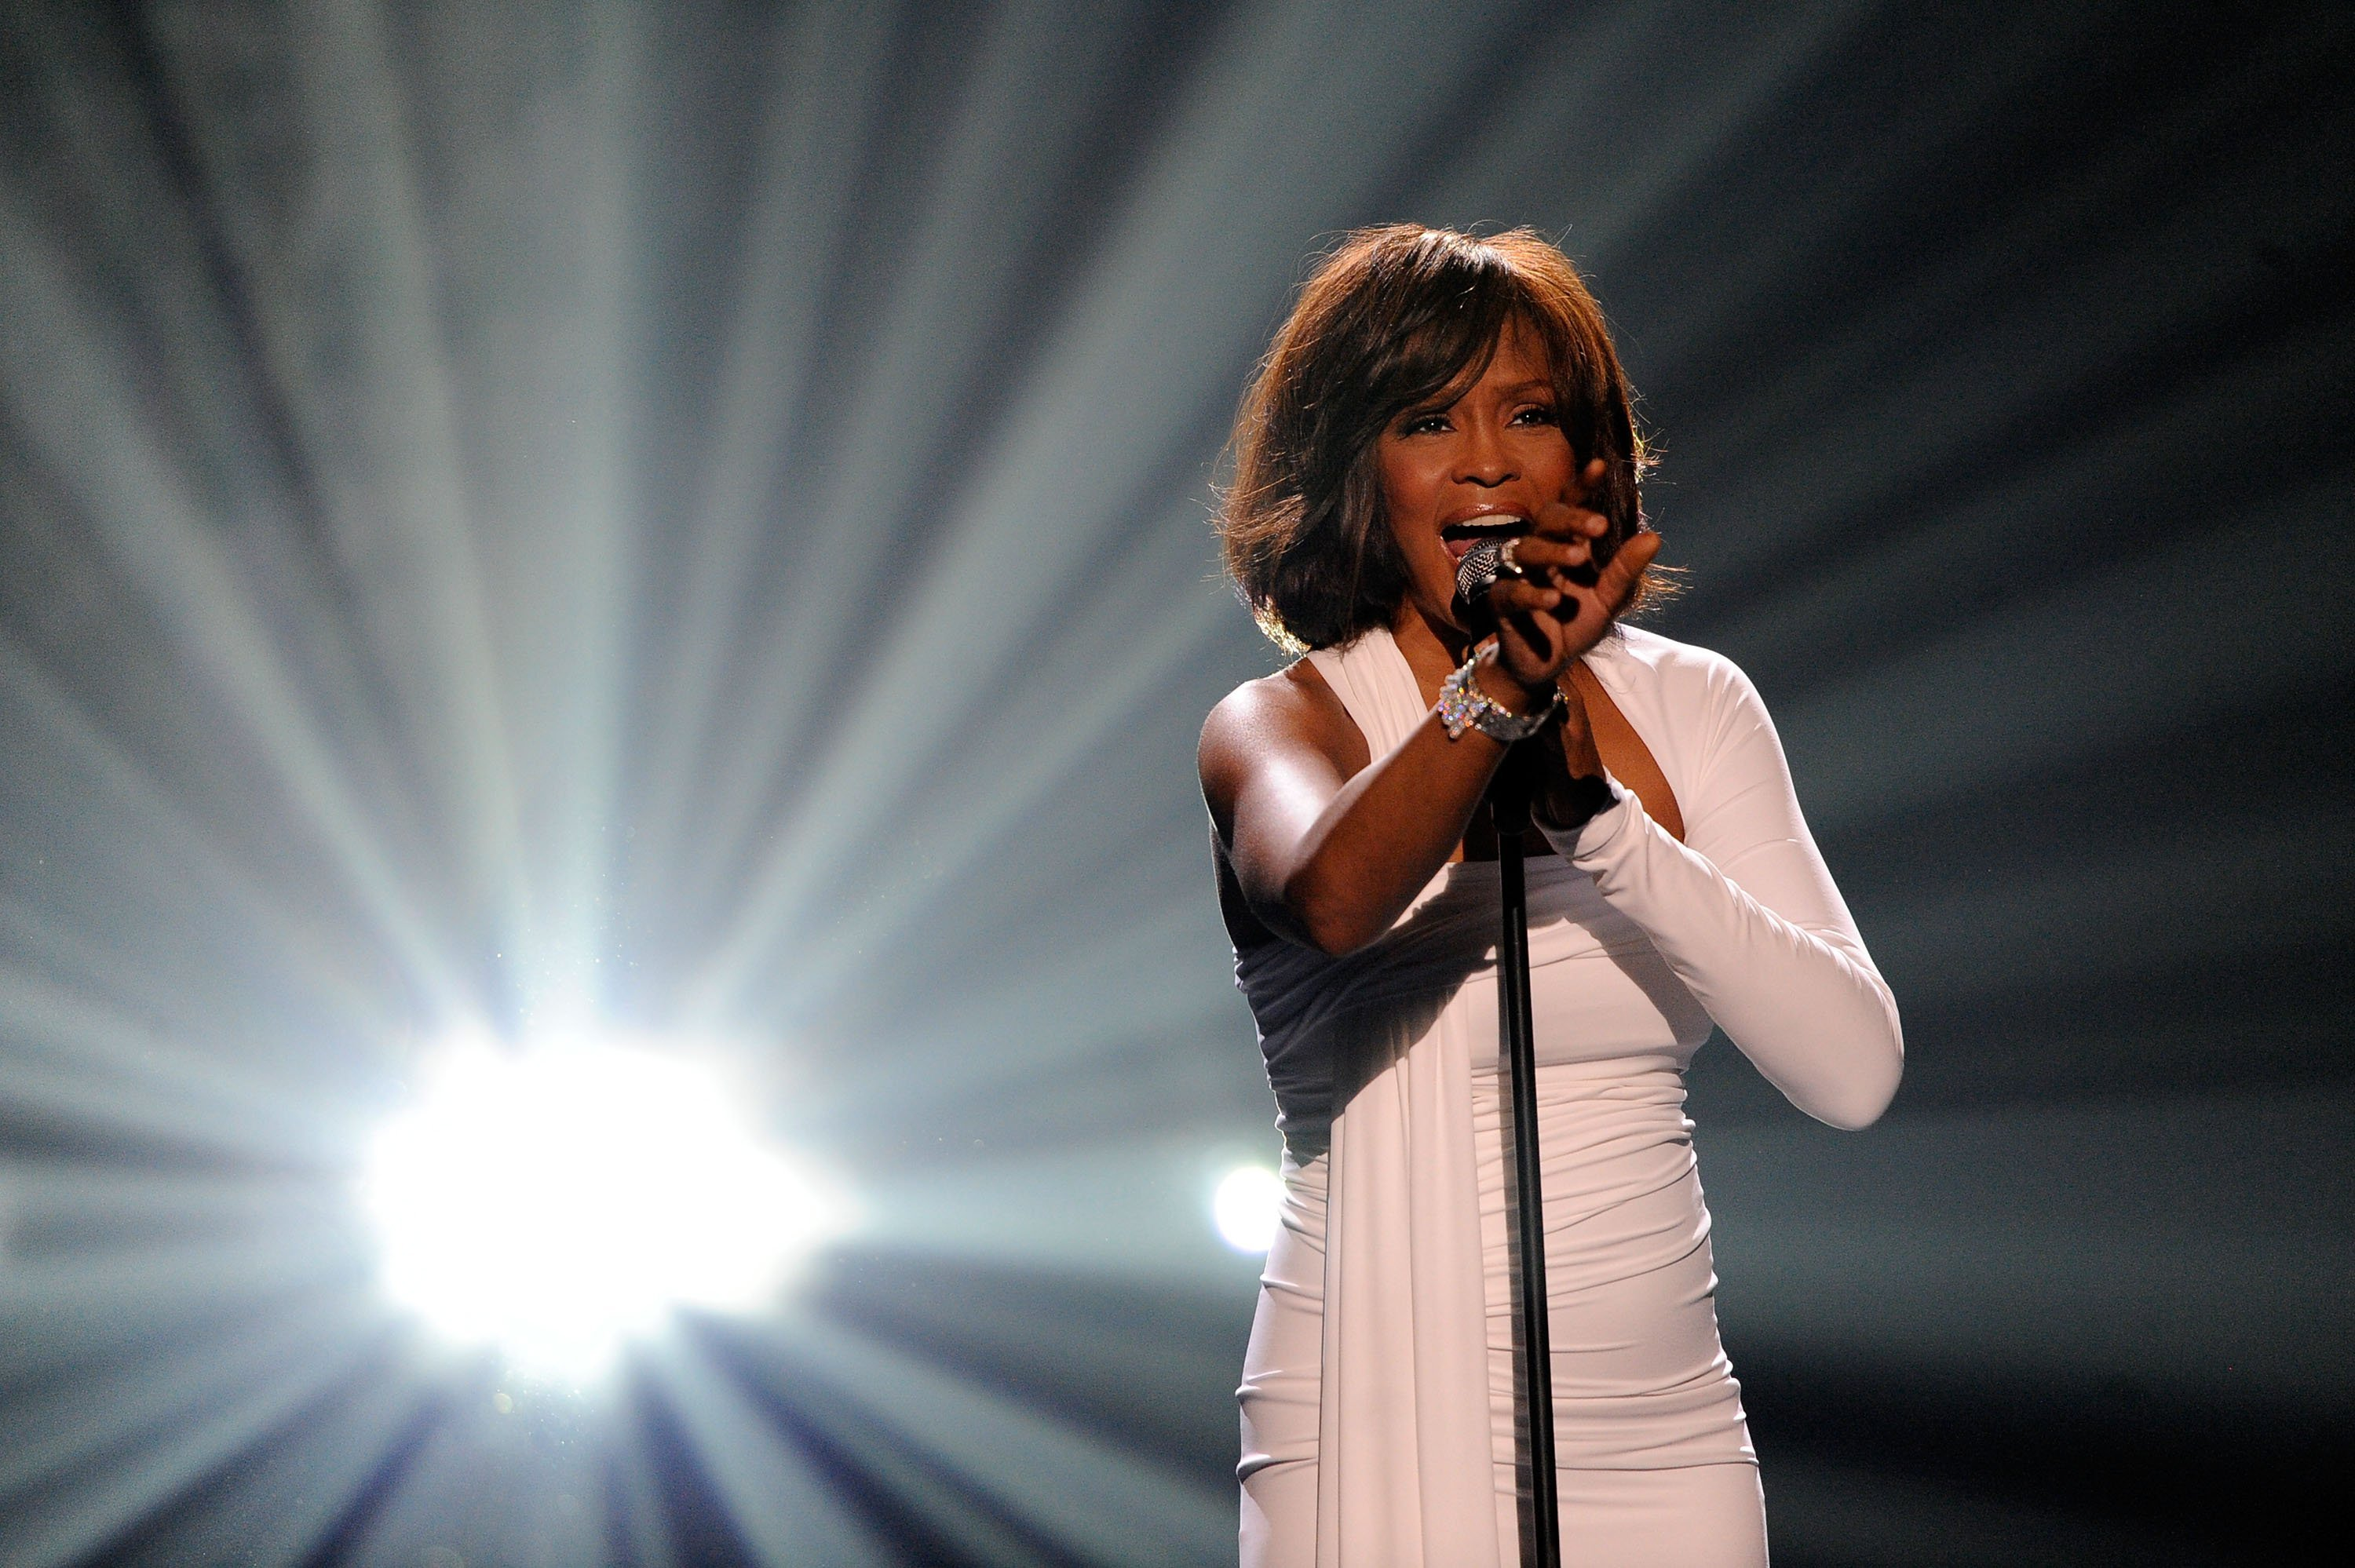 Whitney Houston at the American Music Awards on Nov. 22, 2009 in Los Angeles | Photo: Getty Images